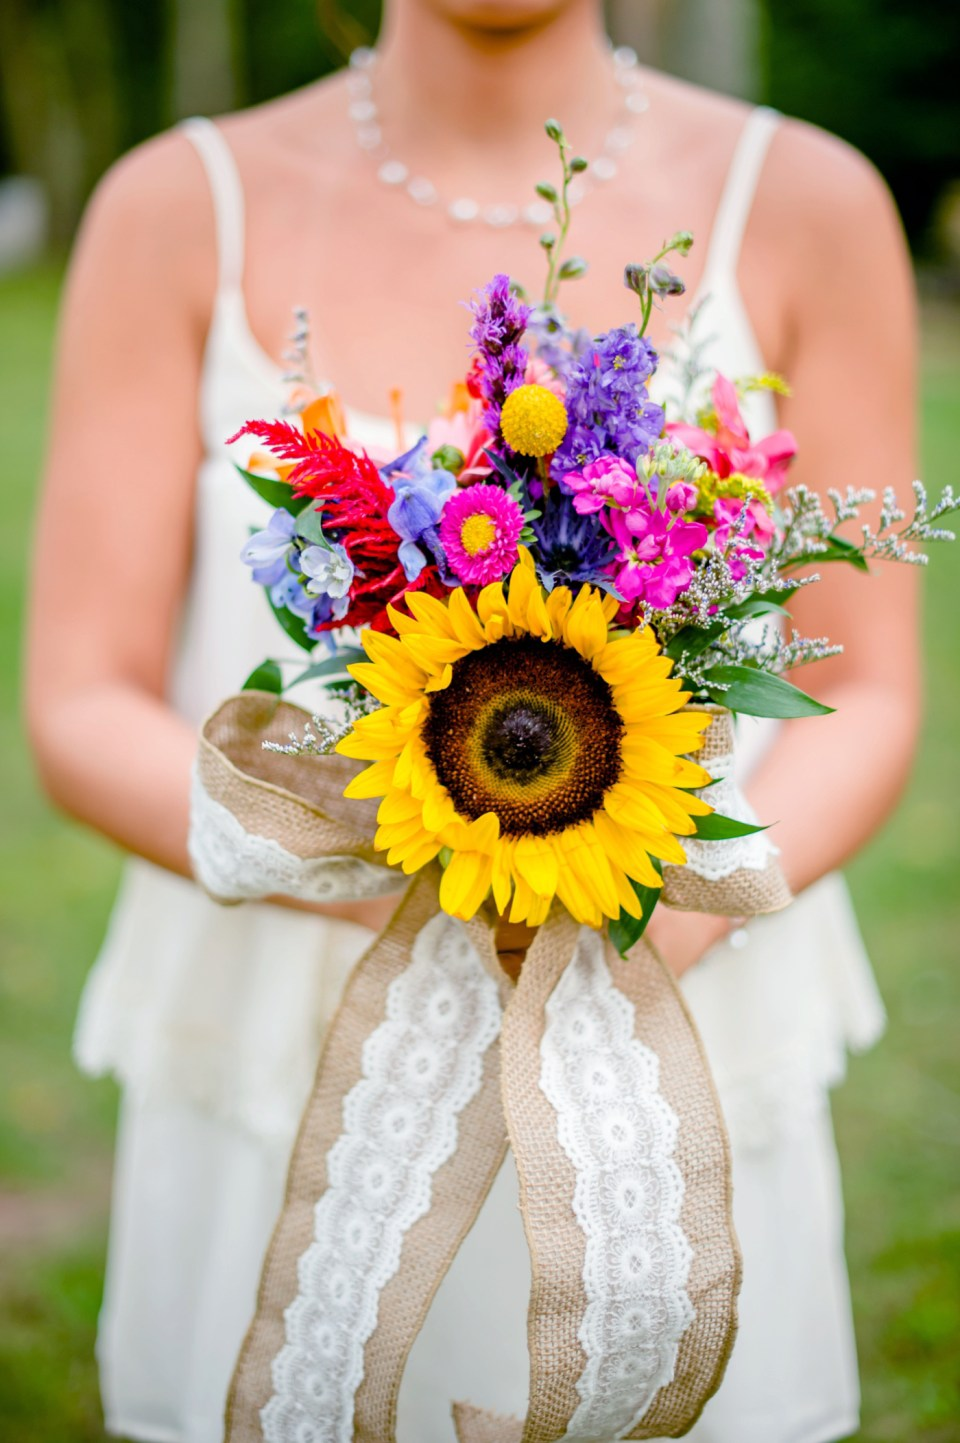 Summer-Wedding-Bouquet-Inspiration-Flowers-Bridal-Bridesmaids420